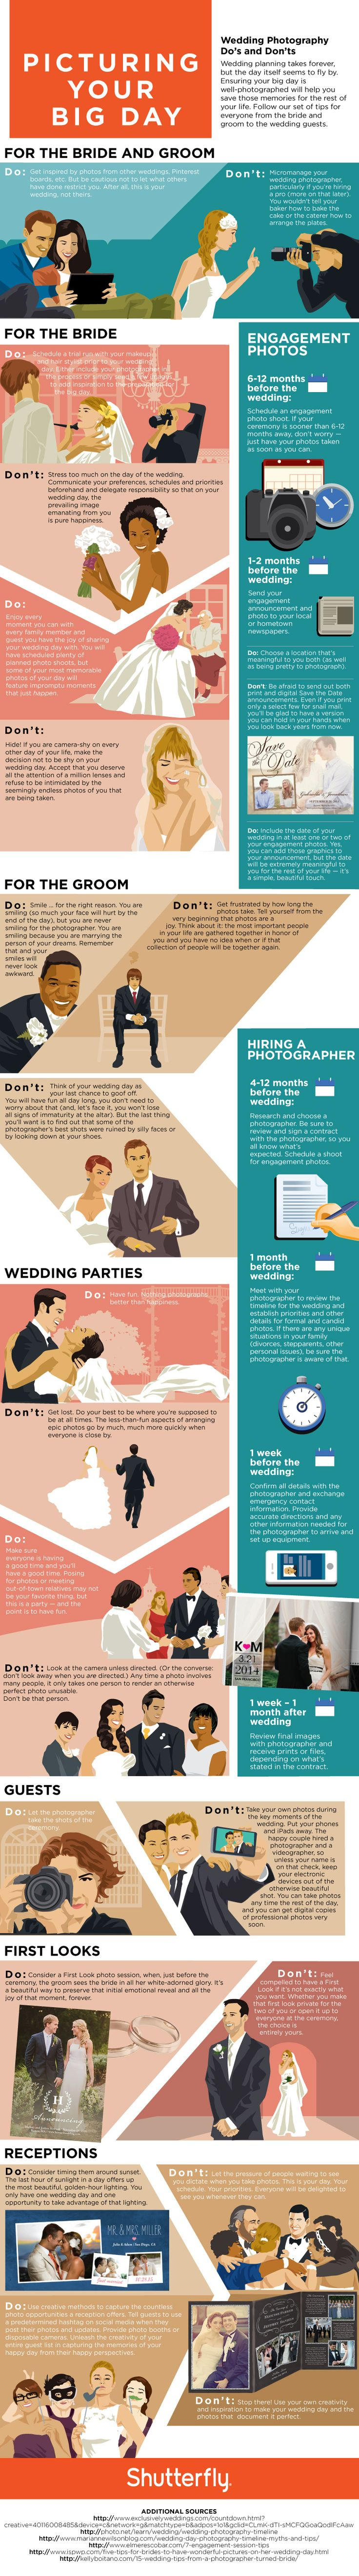 Wedding Photography Do's and Don'ts #infographic #Wedding #Photography